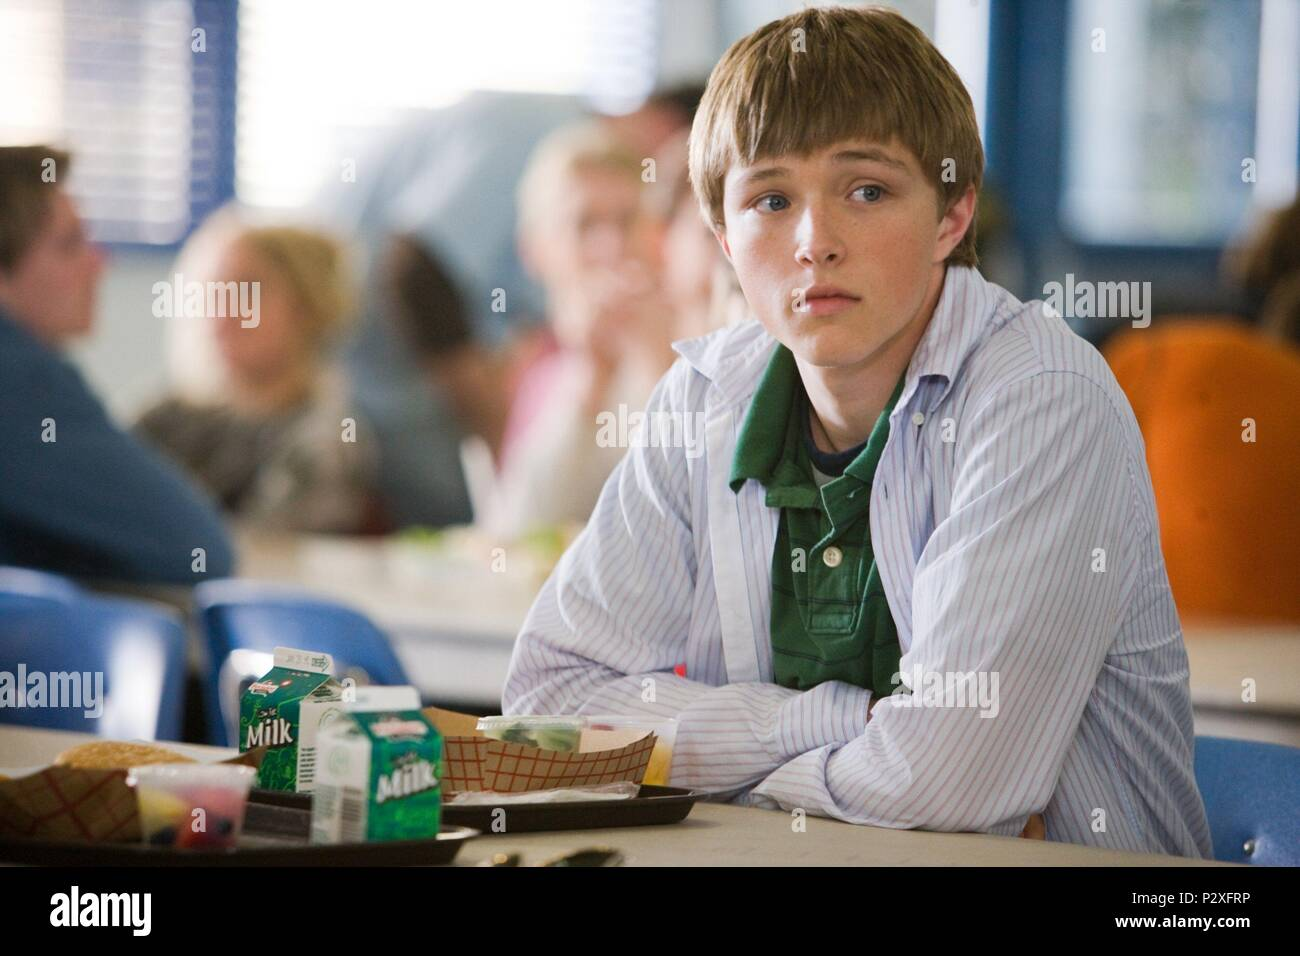 Sterling Knight Stock Photos & Sterling Knight Stock Images